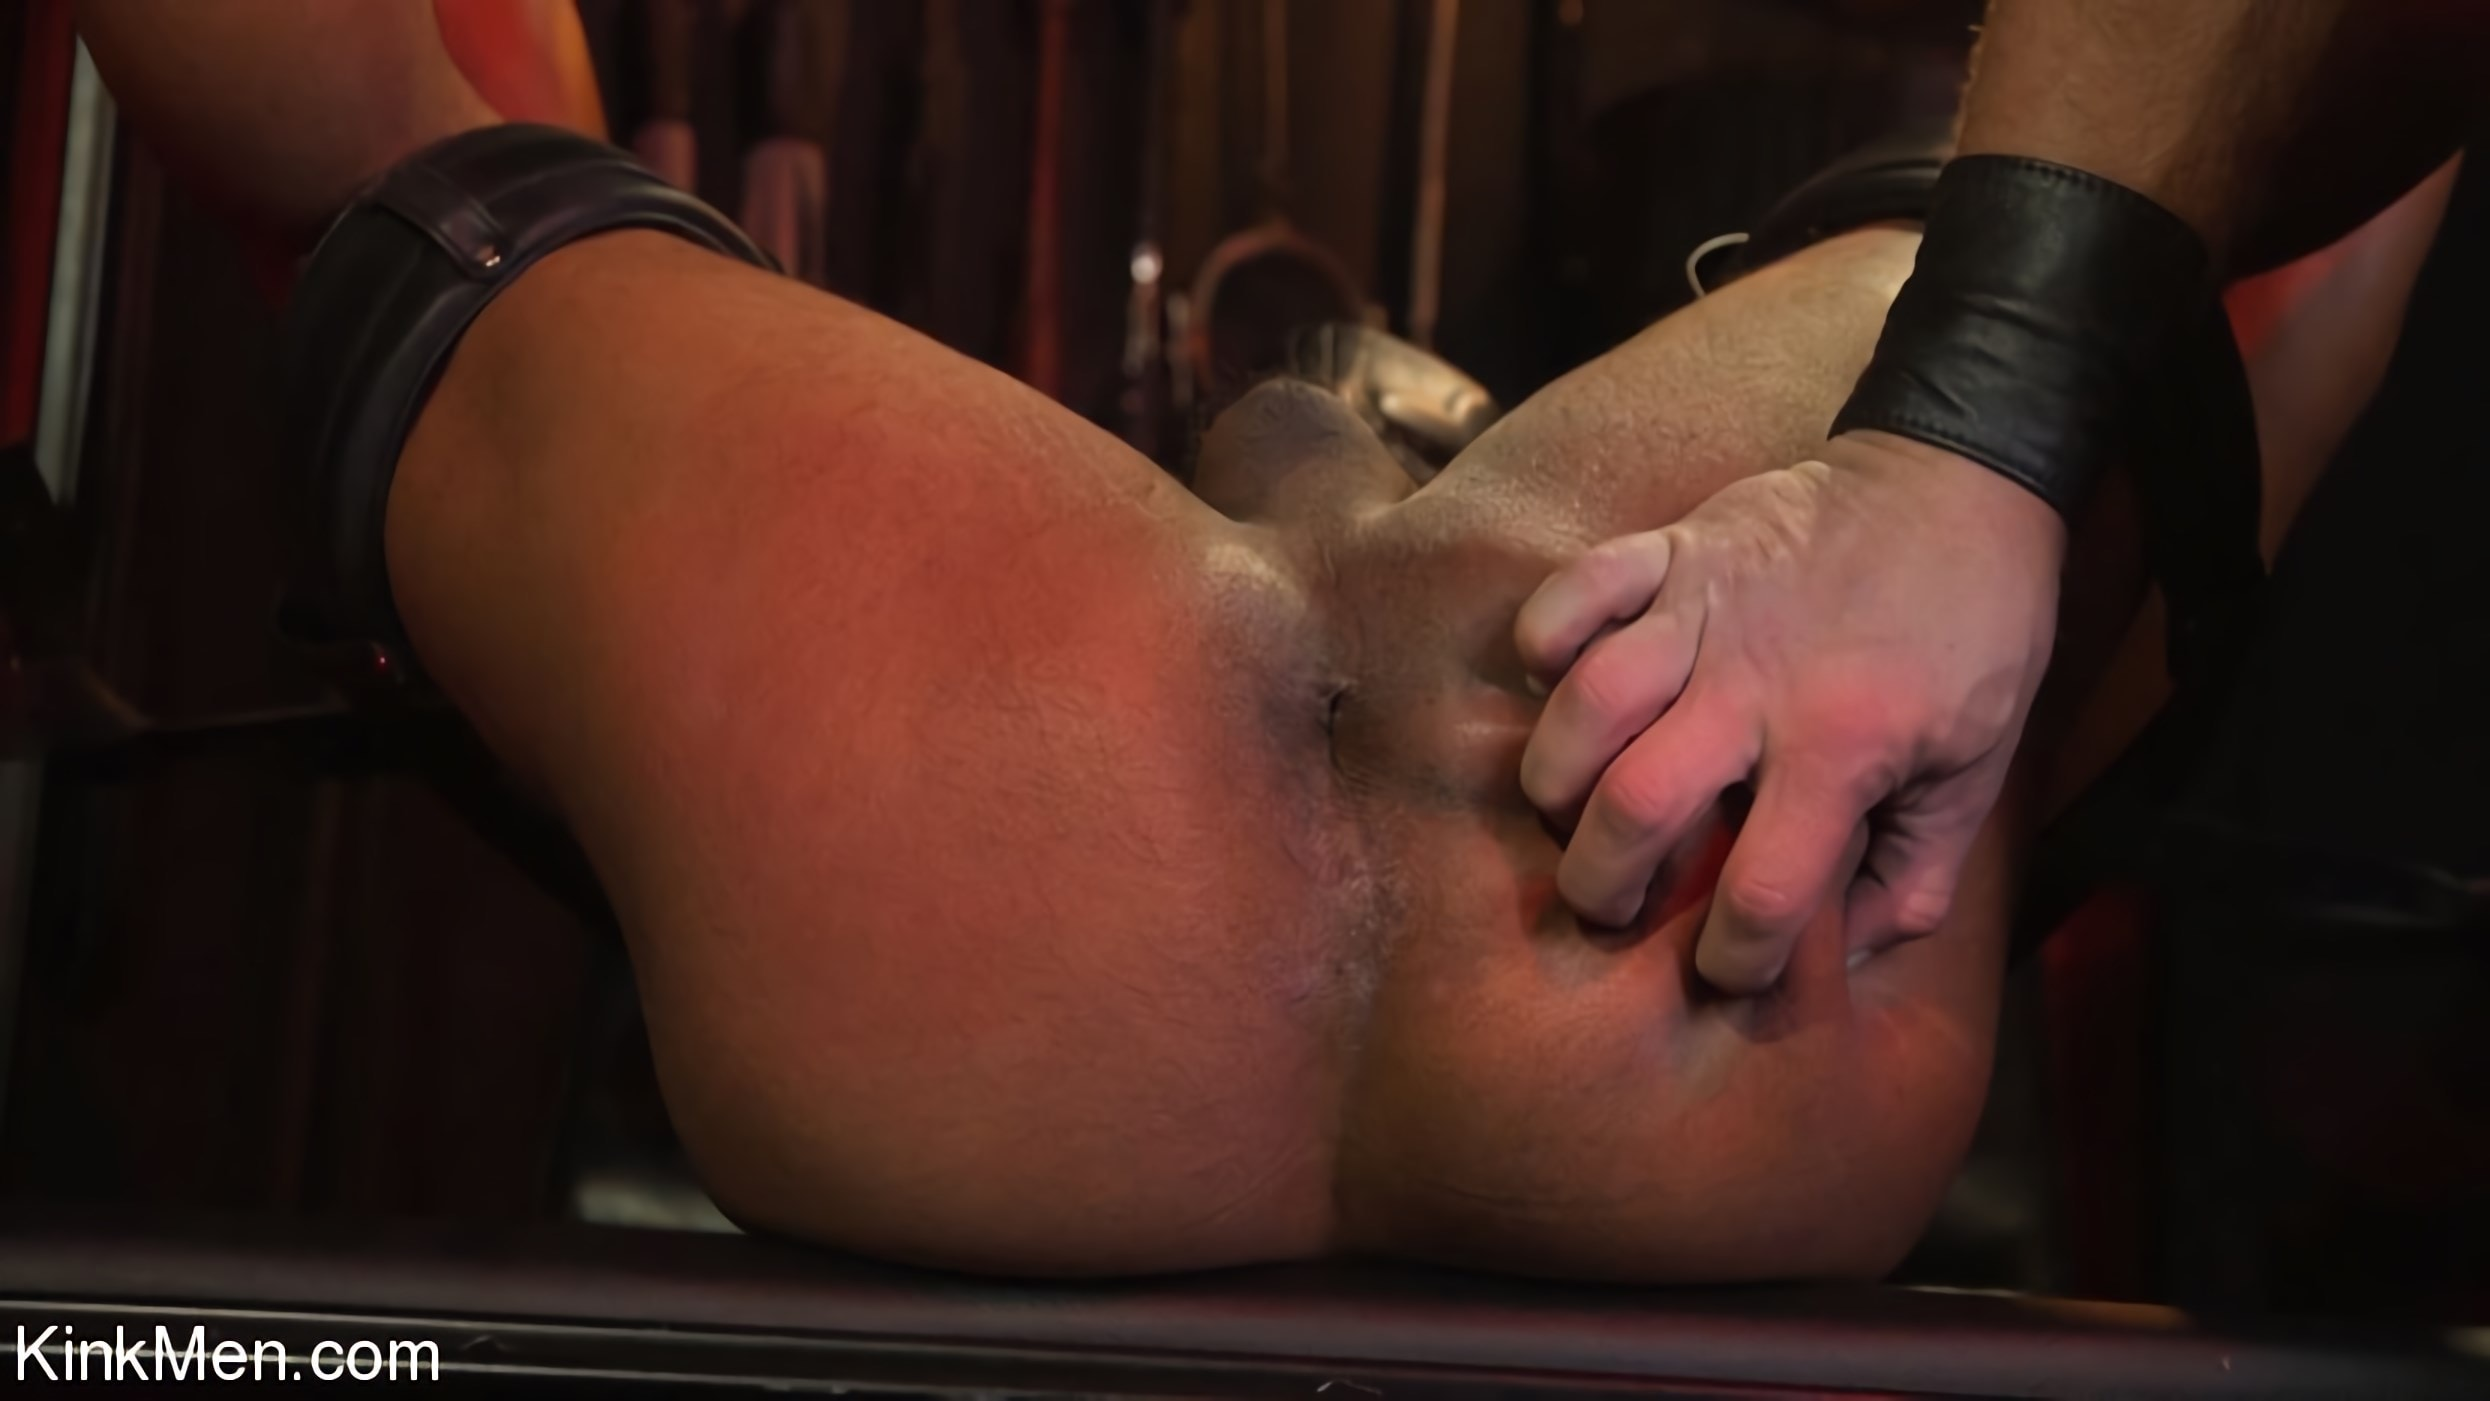 Colby Jansen - Colby Jansen and Dillon Diaz: Stud Fucker | Picture (6)